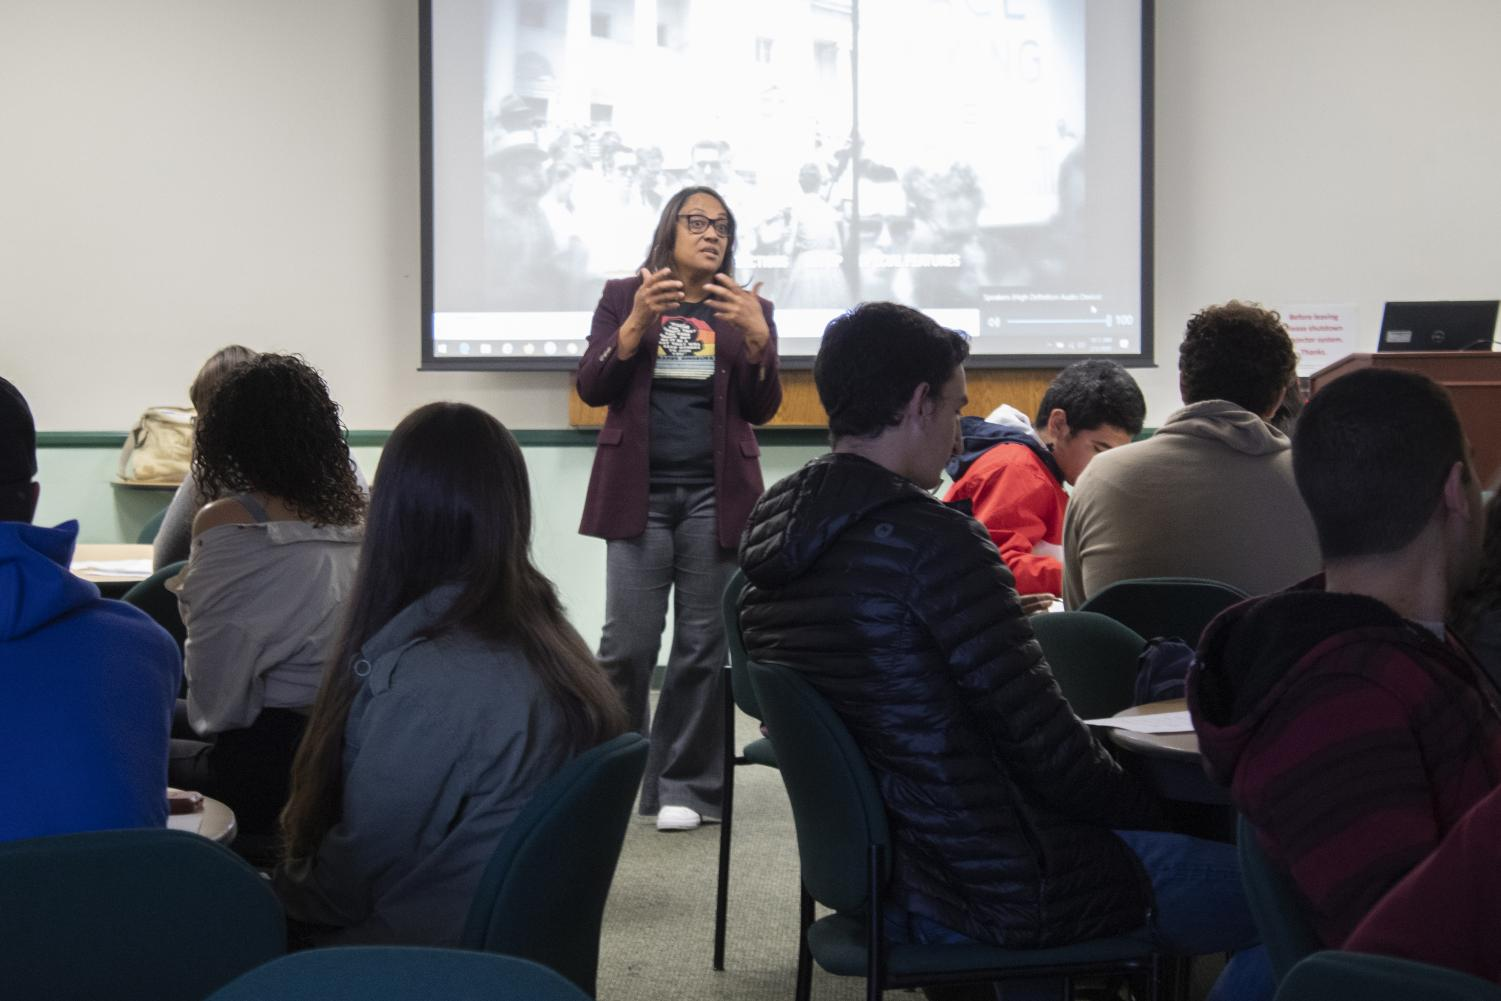 Tamarra Coleman, English Professor and Multi-Cultural Project Specialist, speaks to Students before showing the movie 'I am not your Negro' for Black History Month, on Wednesday, Feb. 5. The movie was shown in the Campus Center Conference Room. Photo credit: Scott Mazzarano